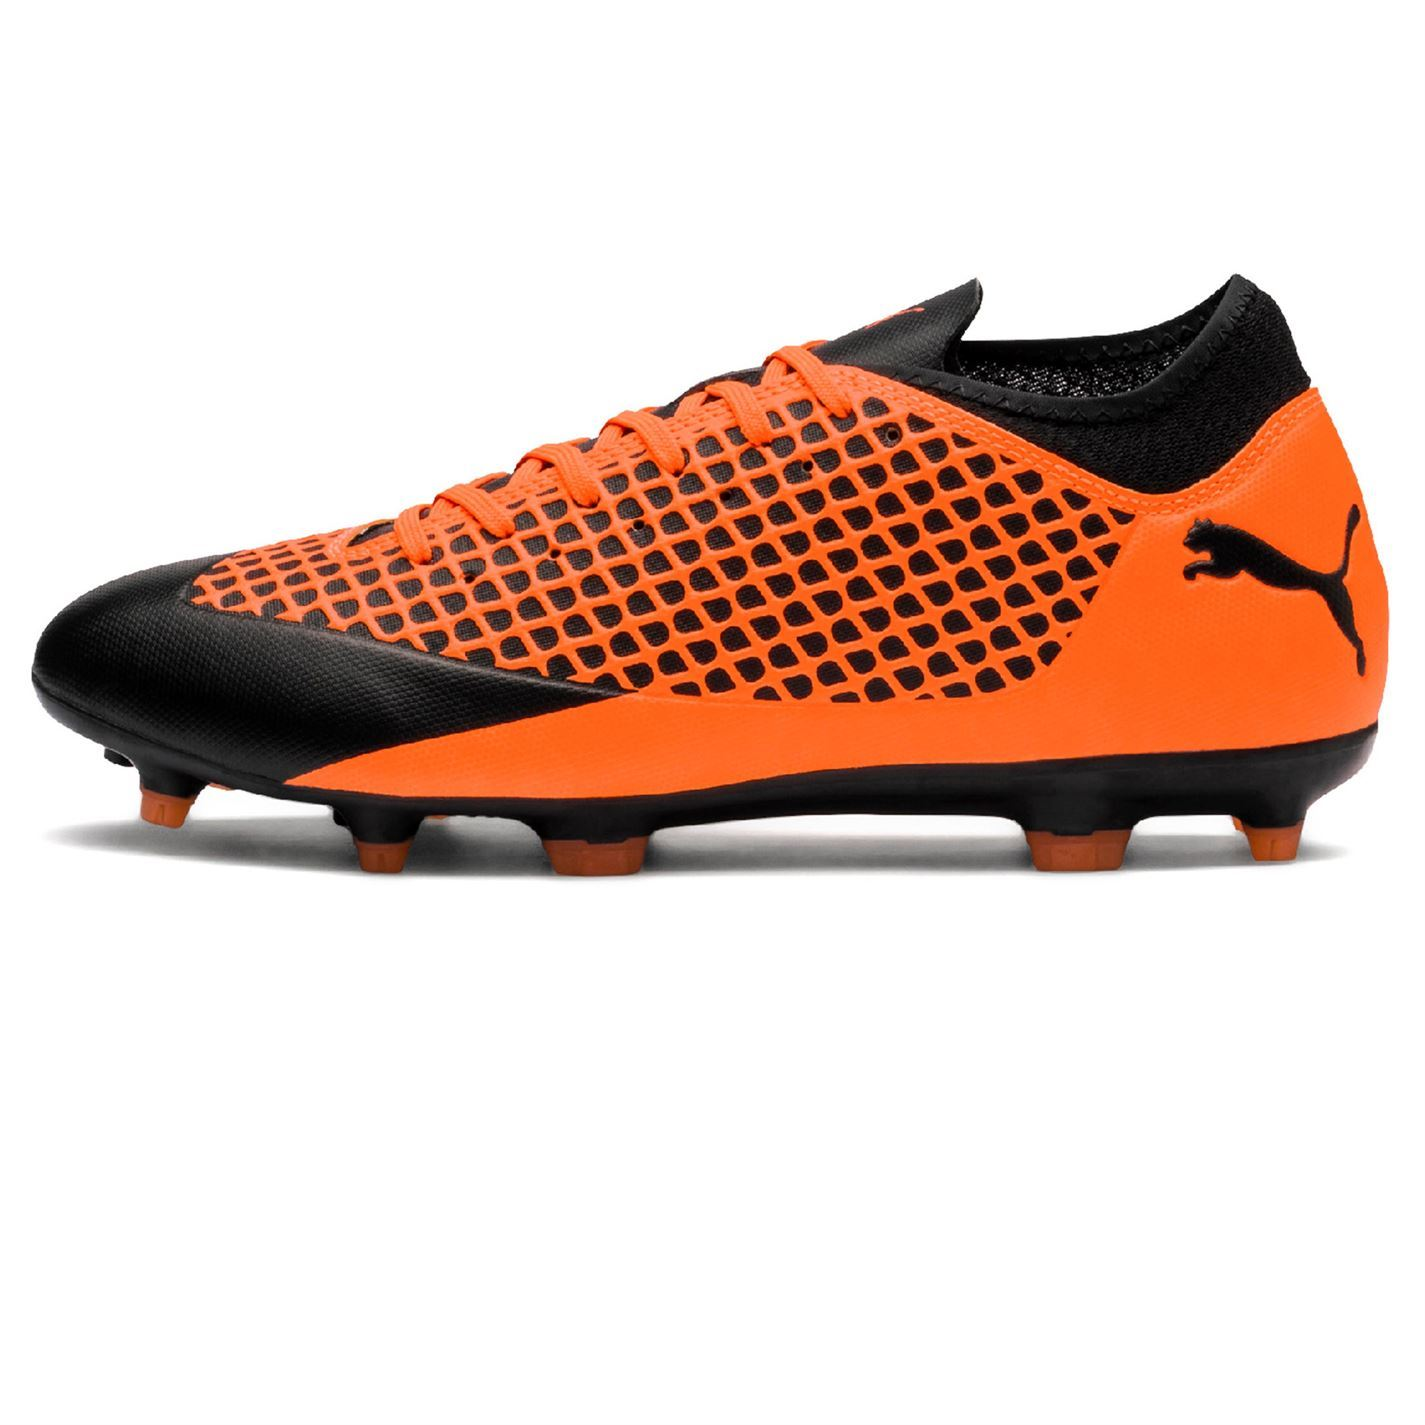 71ffb803e ... Puma Future 2.4 FG Firm Ground Football Boots Mens Soccer Shoes Cleats